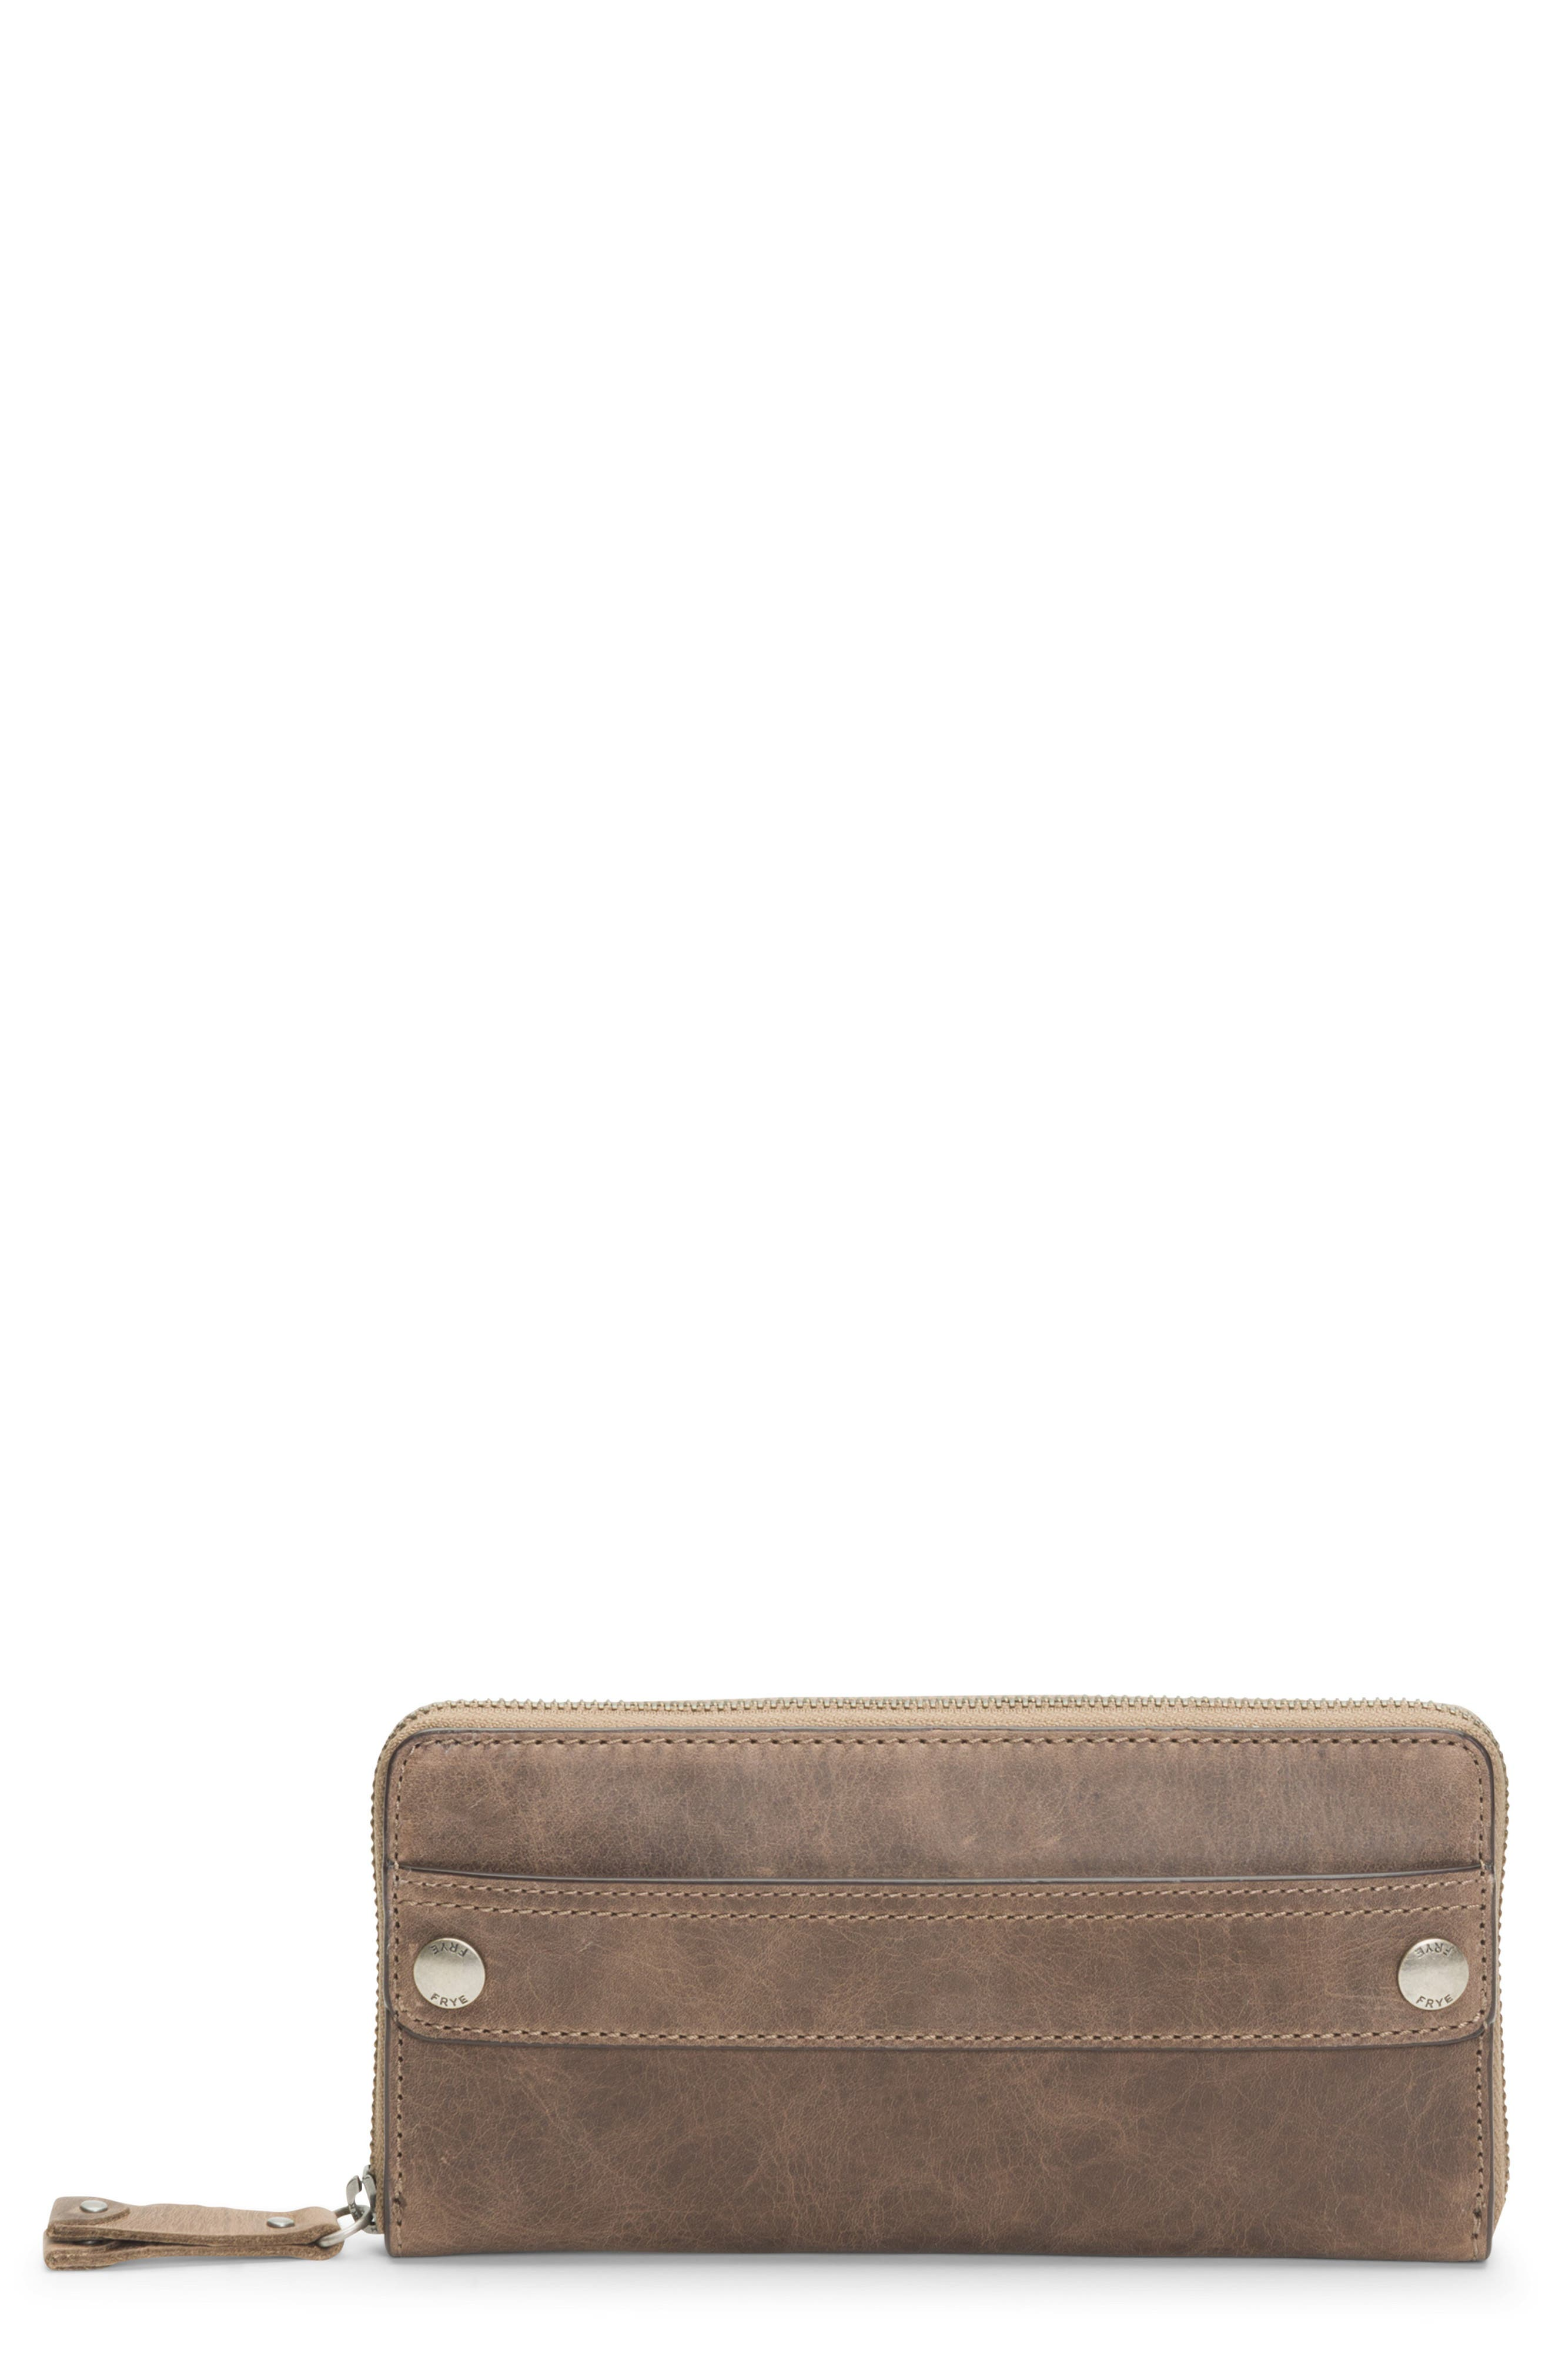 Melissa 2 Leather Zip Wallet,                         Main,                         color, 030